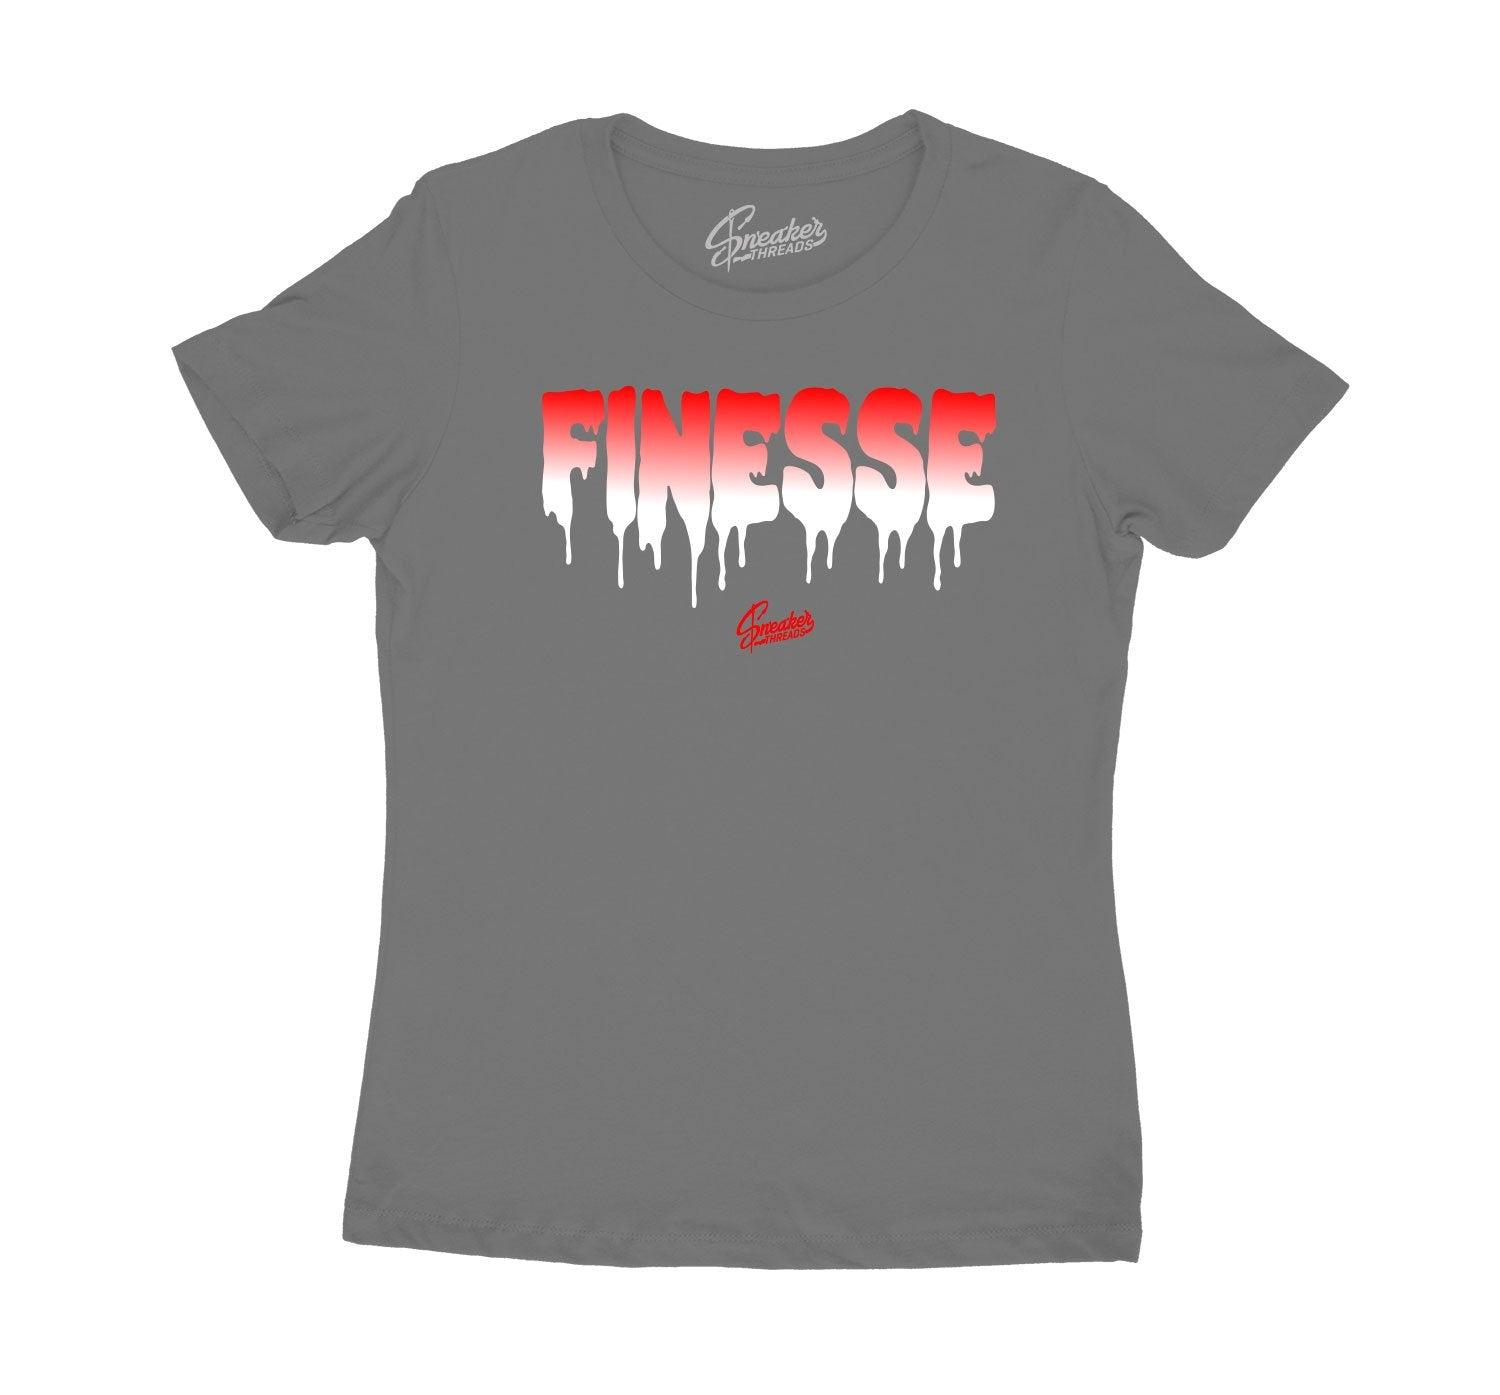 Jordan 12 Dark Grey Finesse Womens sneaker tee